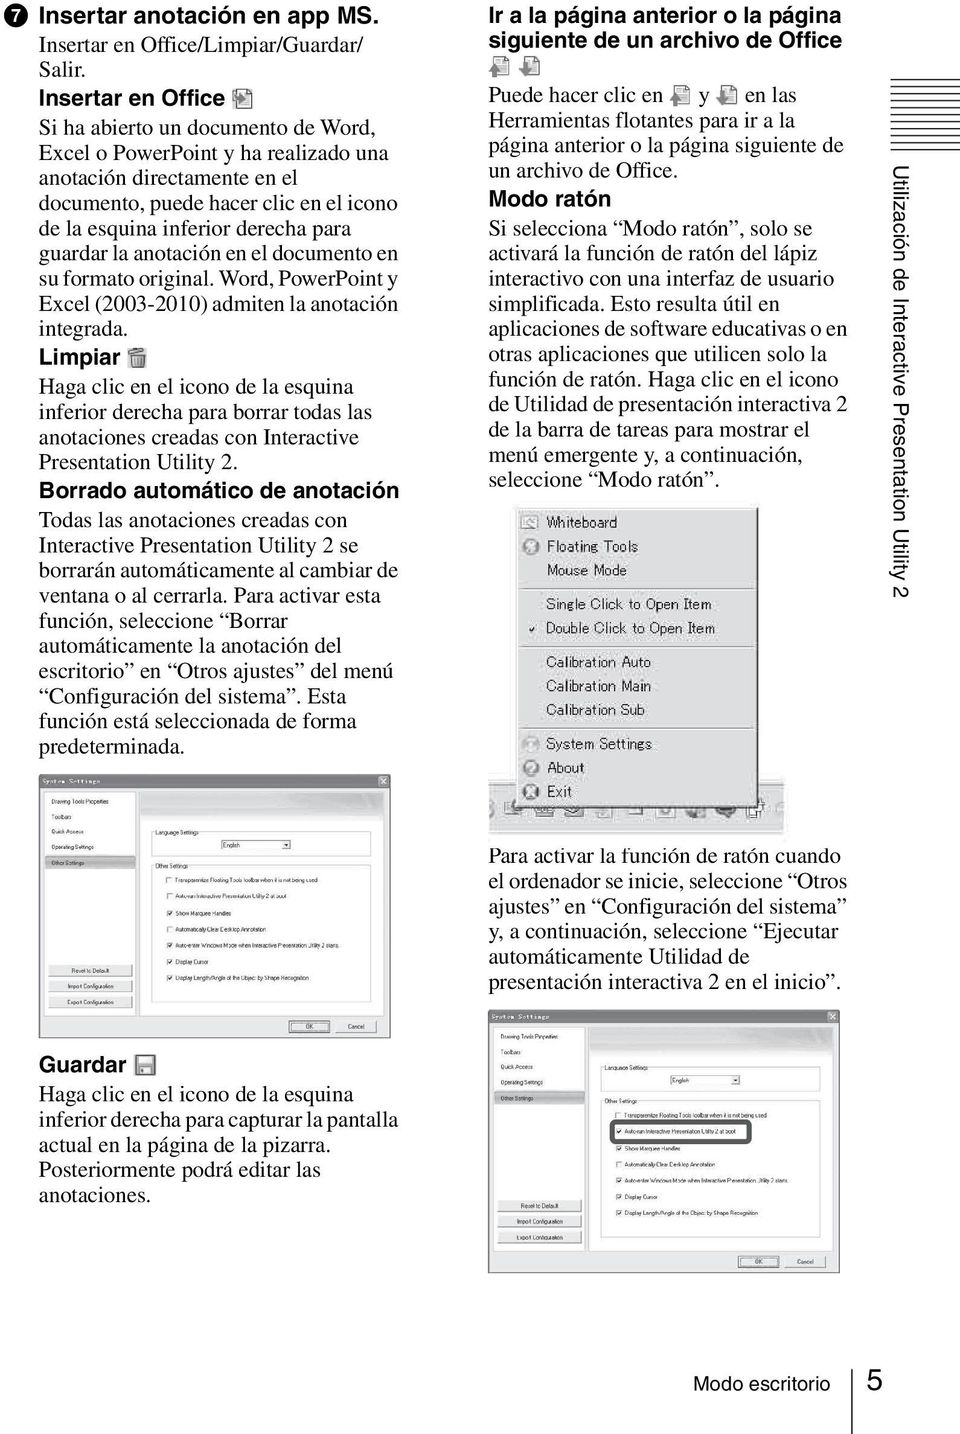 guardar la anotación en el documento en su formato original. Word, PowerPoint y Excel (2003-2010) admiten la anotación integrada.